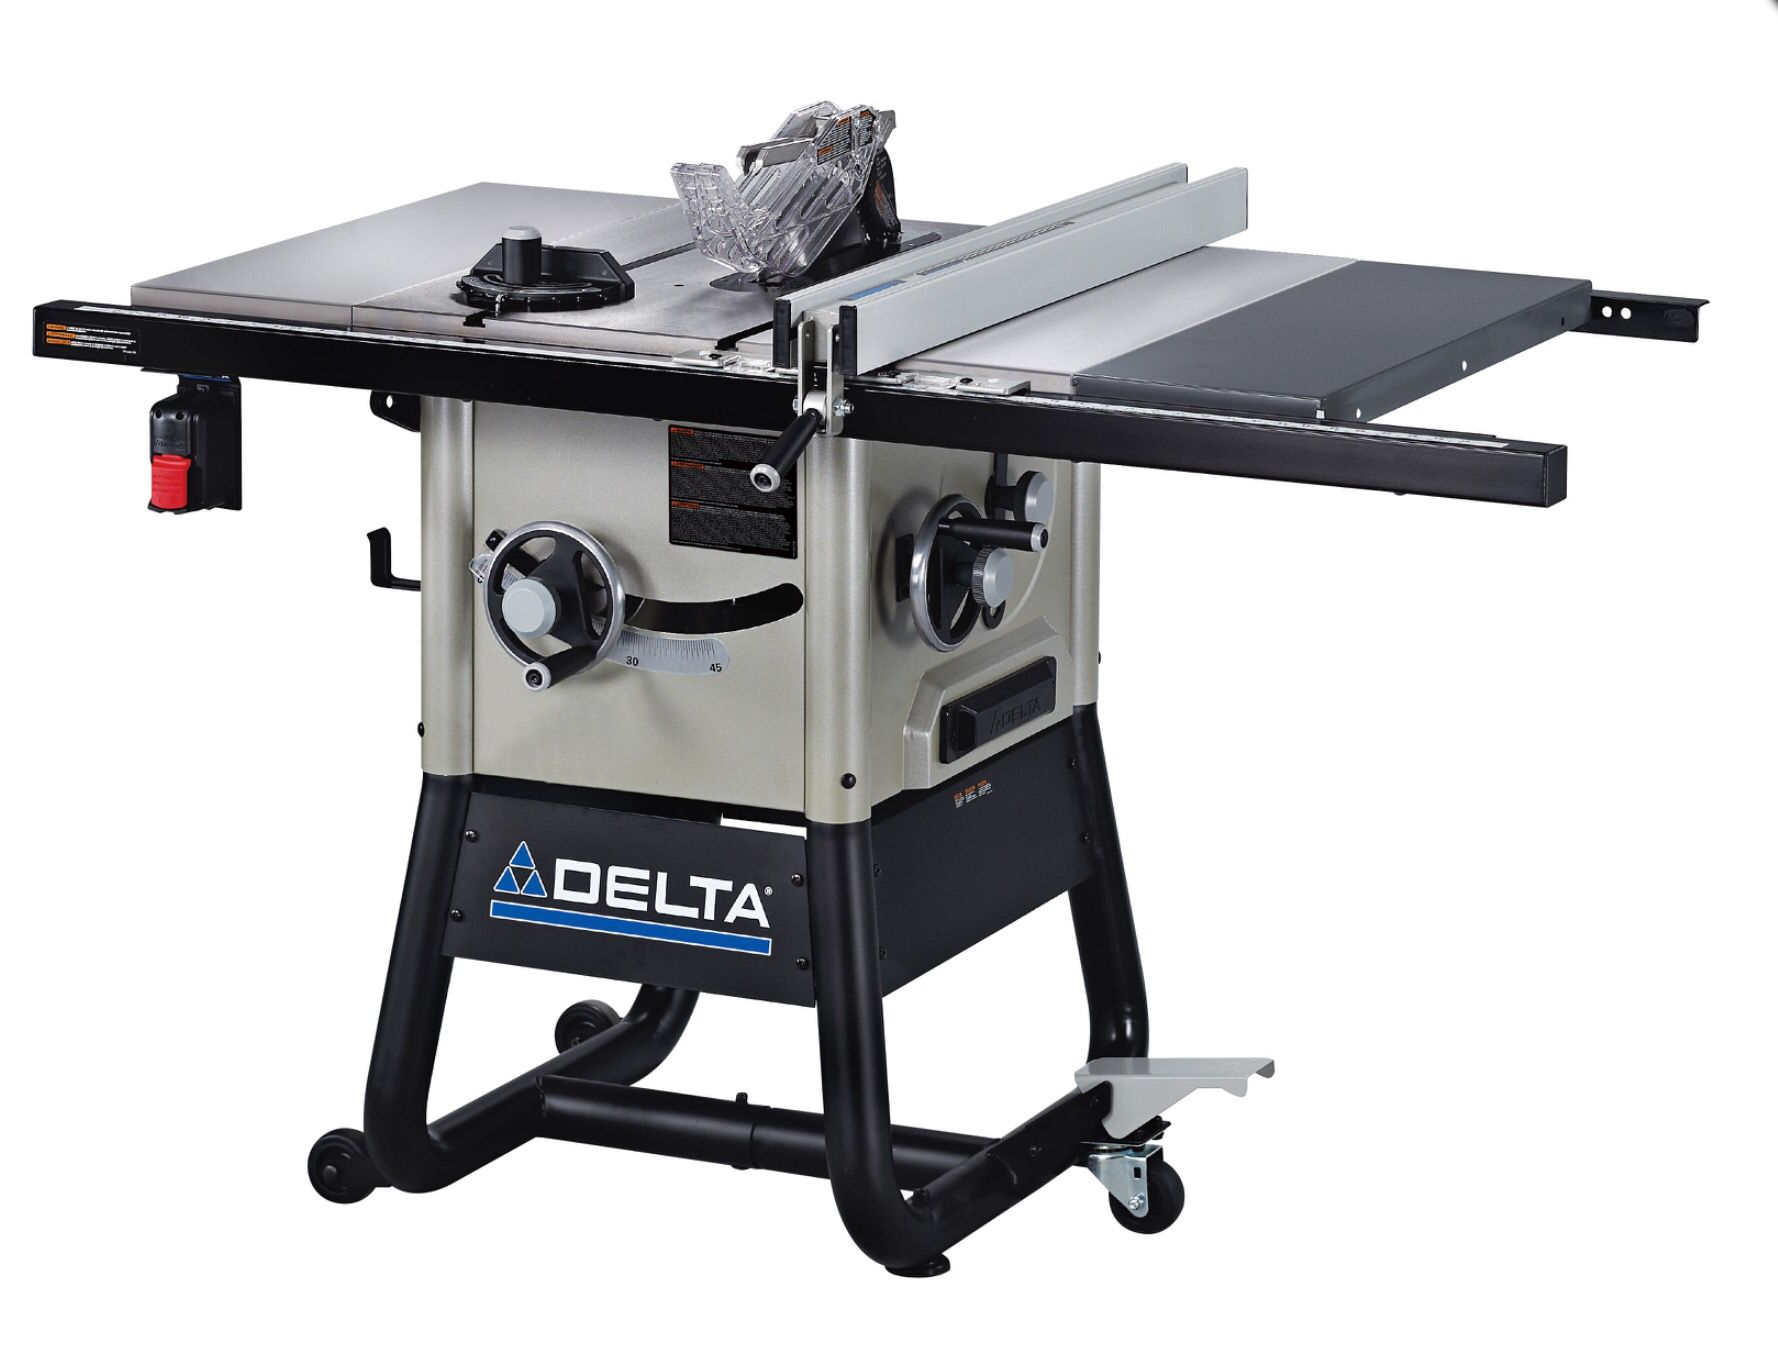 Delta Table Saw With Cast Iron Wings The Awesome